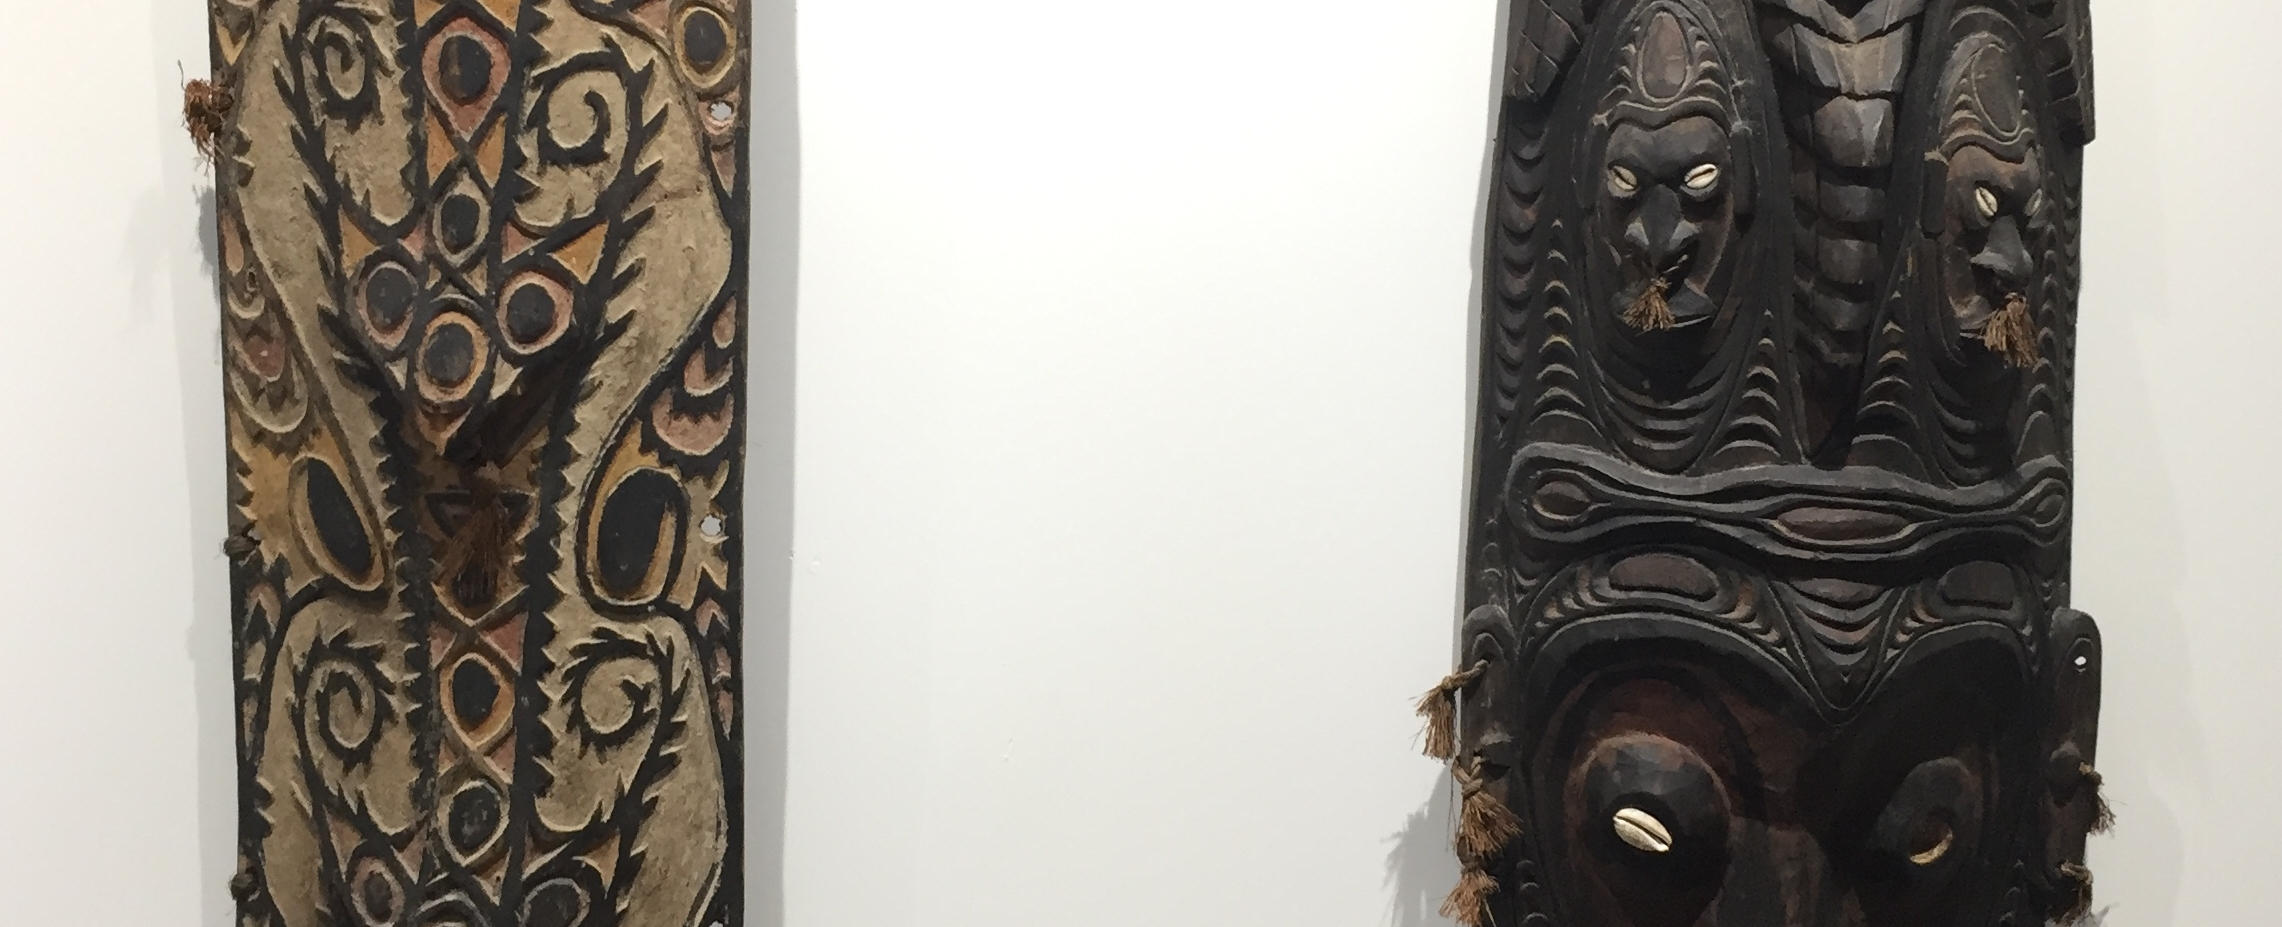 Works from the South Pacific collected during Helen & Walter's travels. On view at the Zwig Foundation Collection.